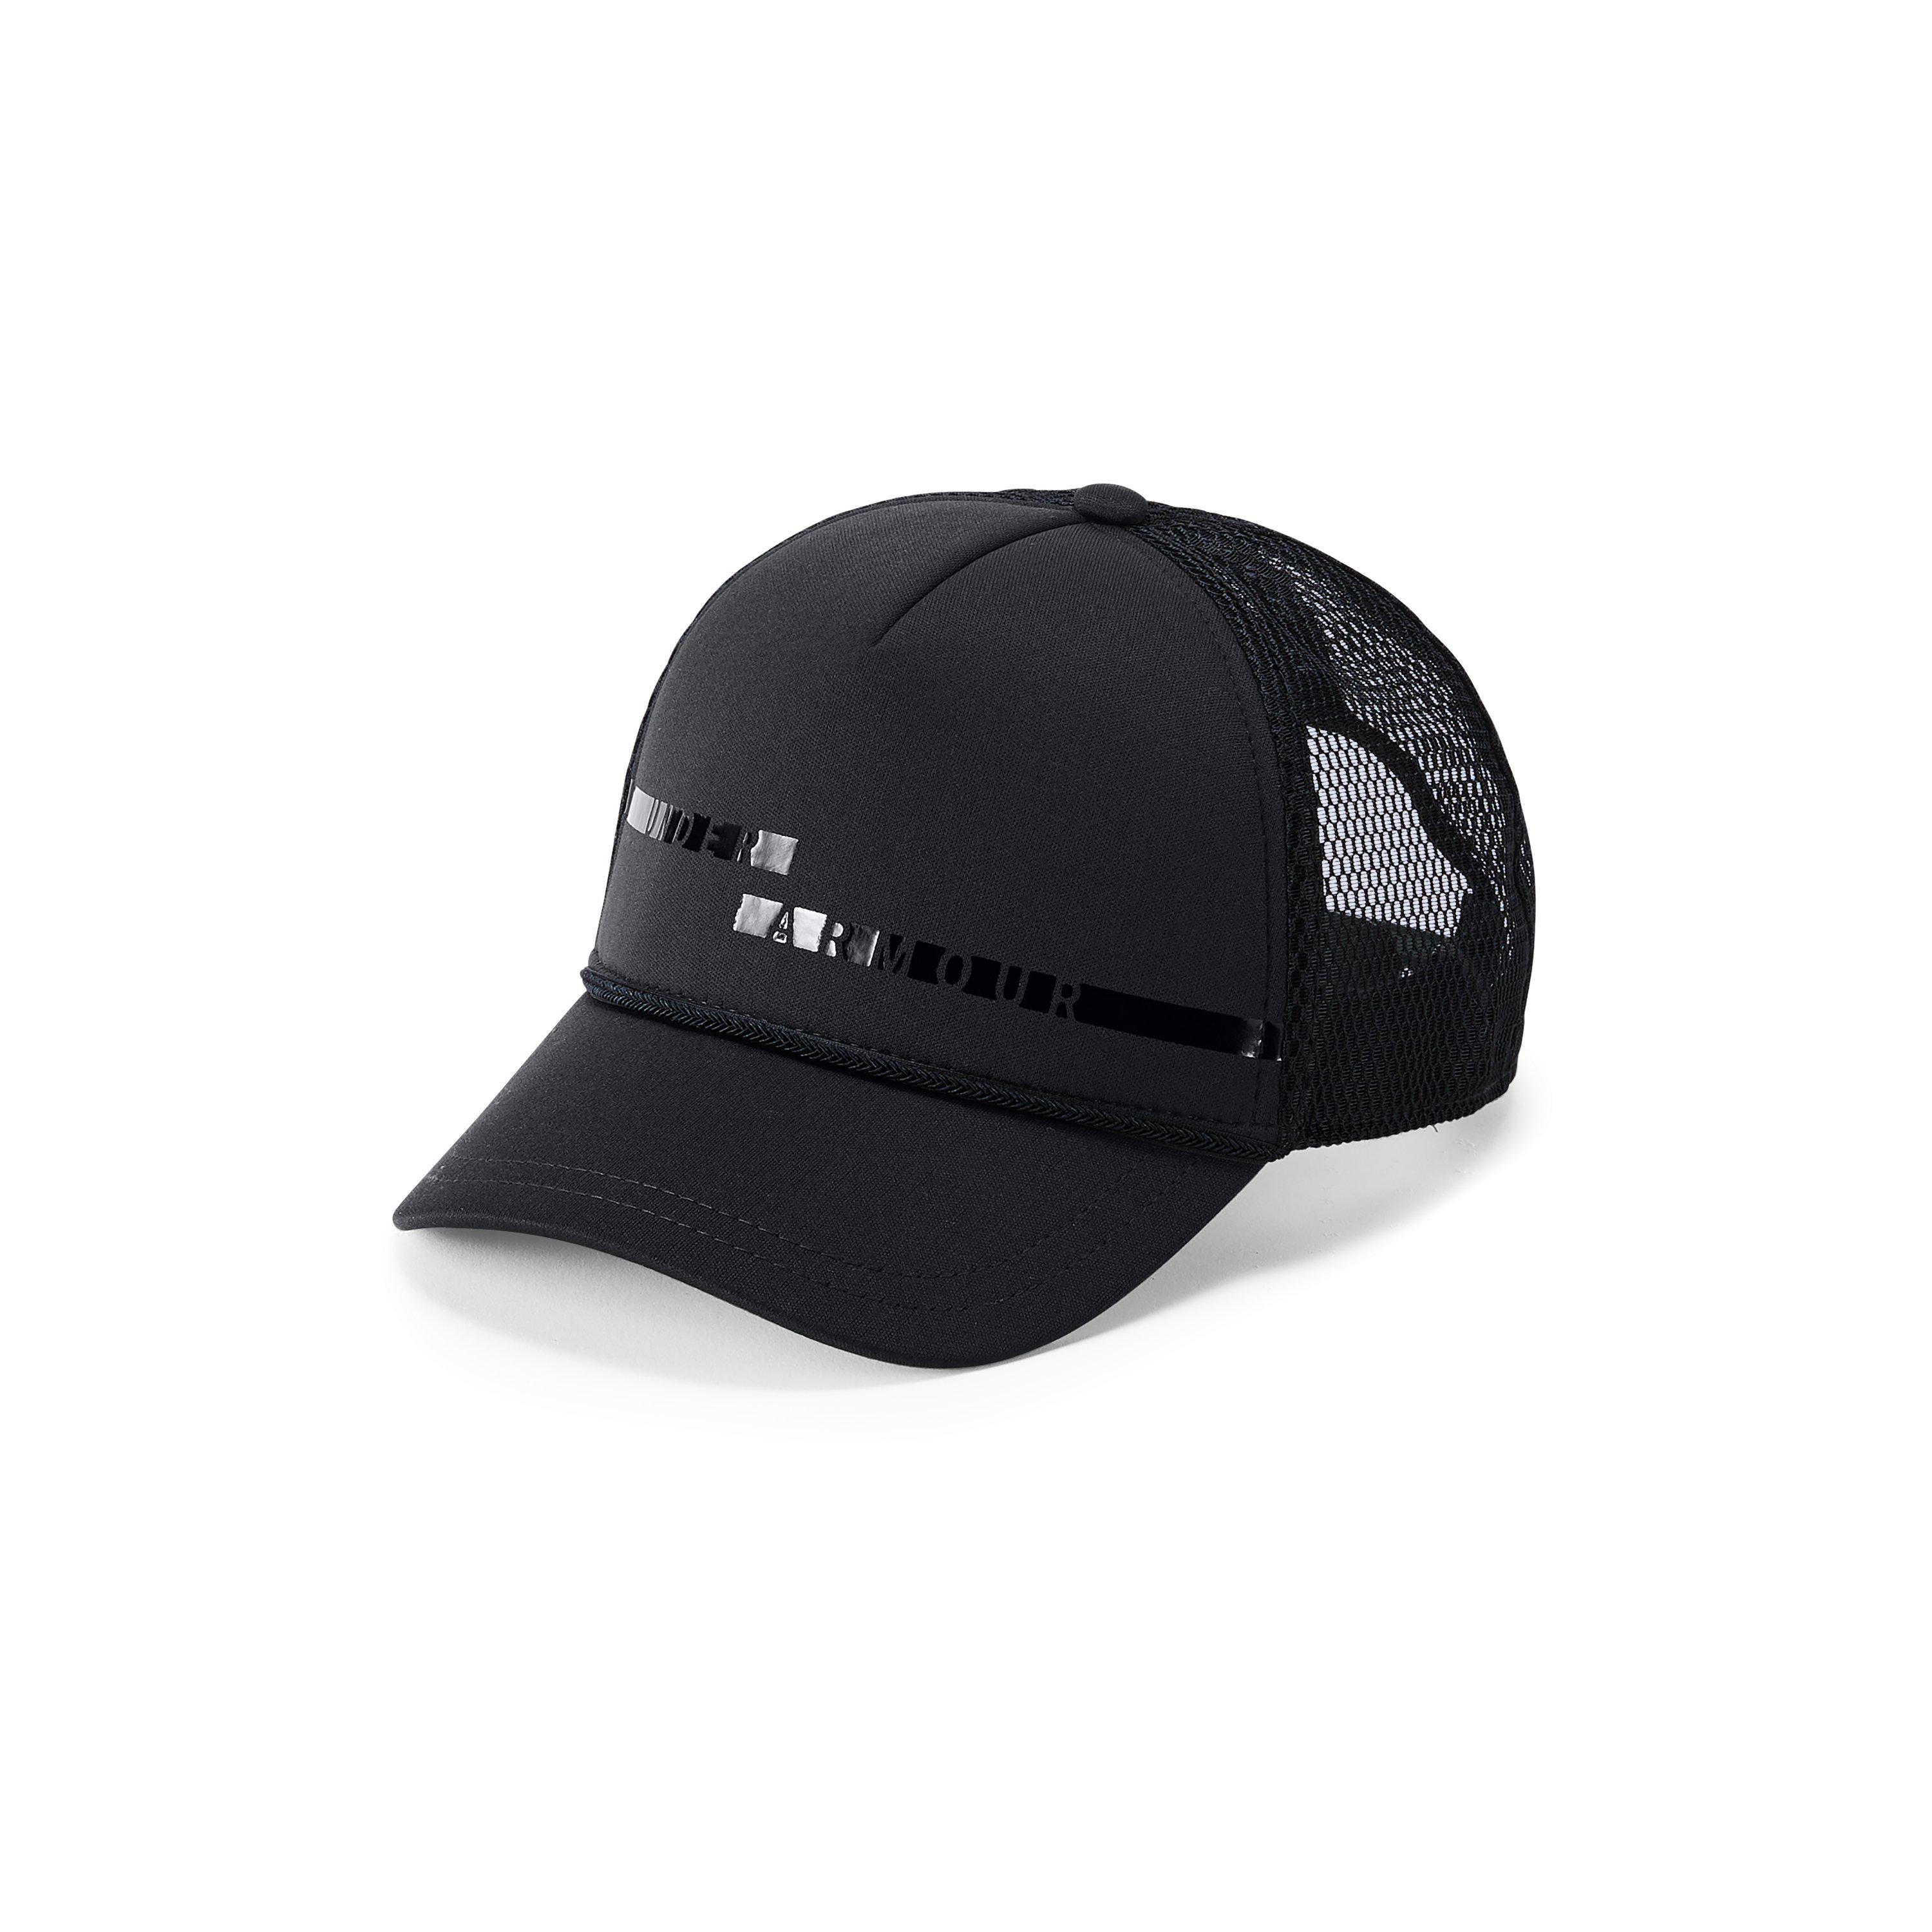 buy online e5e8a 022b0 Under Armour Women s Ua Graphic Trucker Cap in Black - Lyst